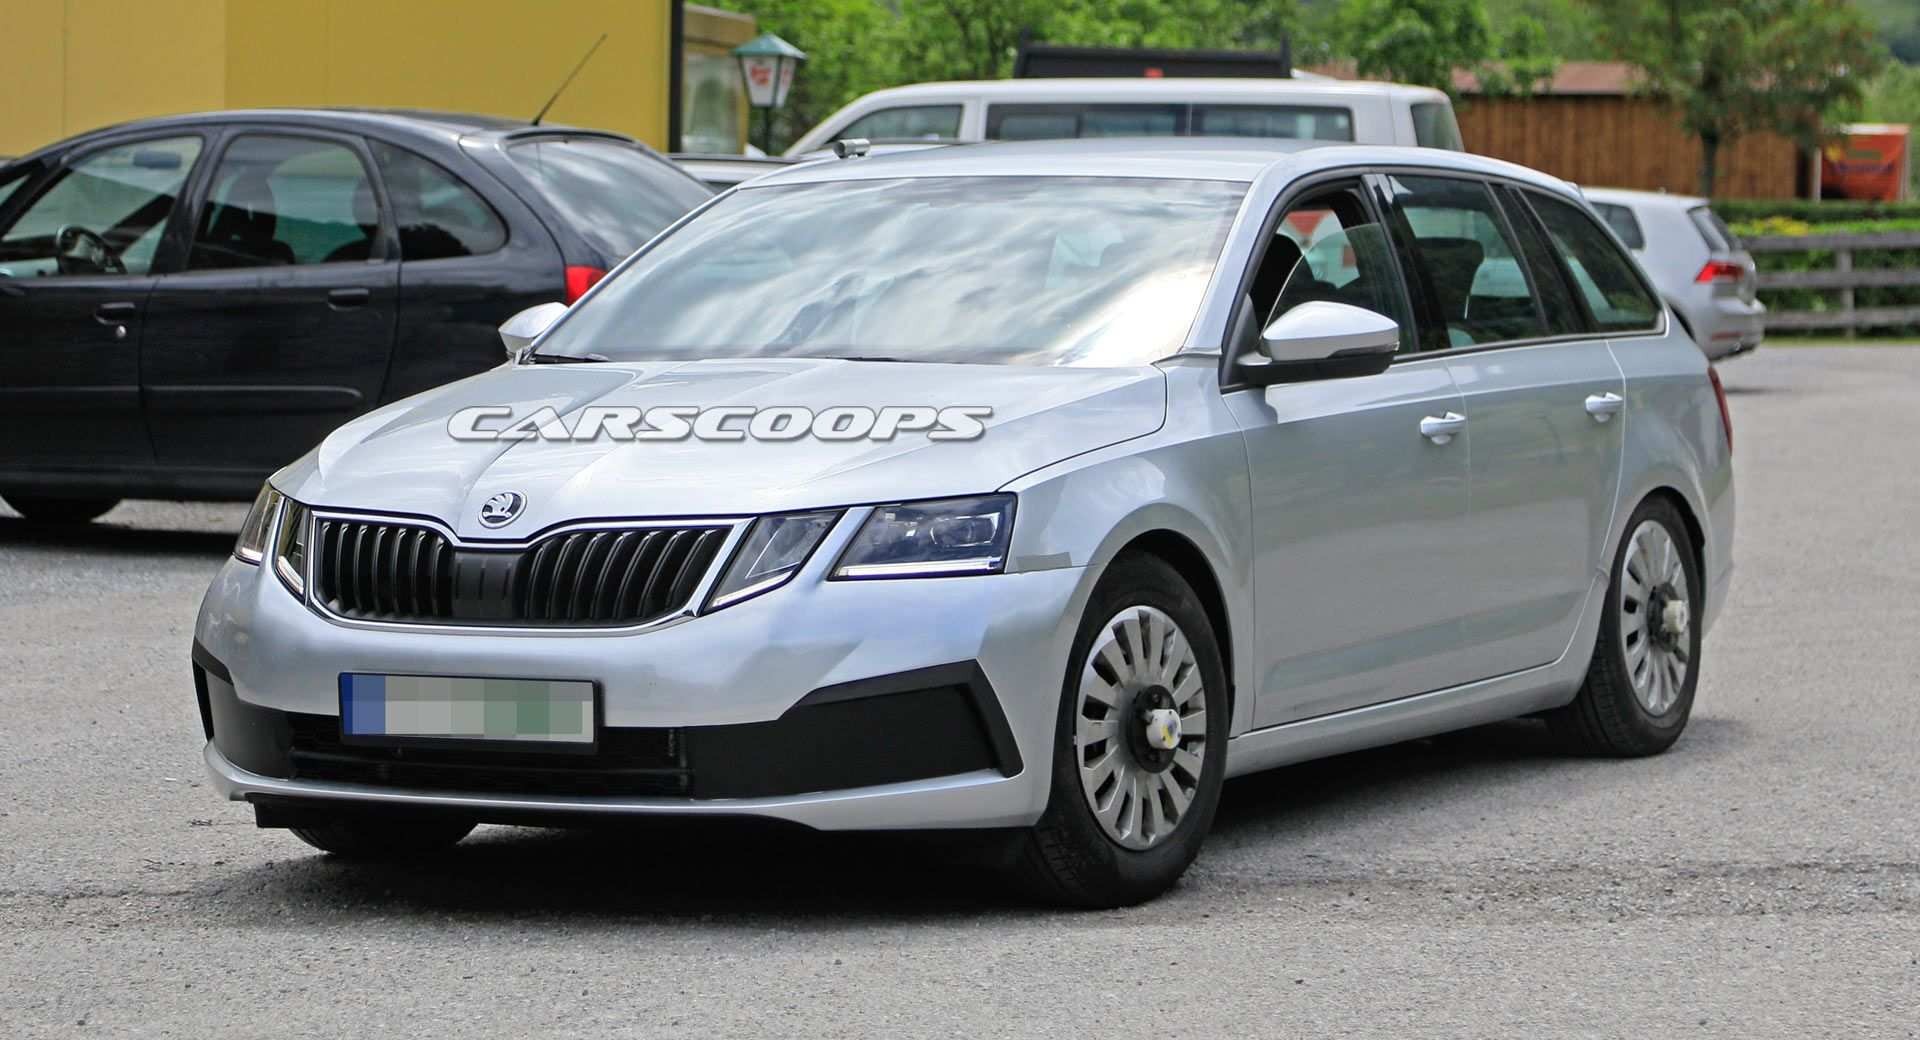 74 The 2020 Skoda Octavia 2018 Redesign and Concept with 2020 Skoda Octavia 2018